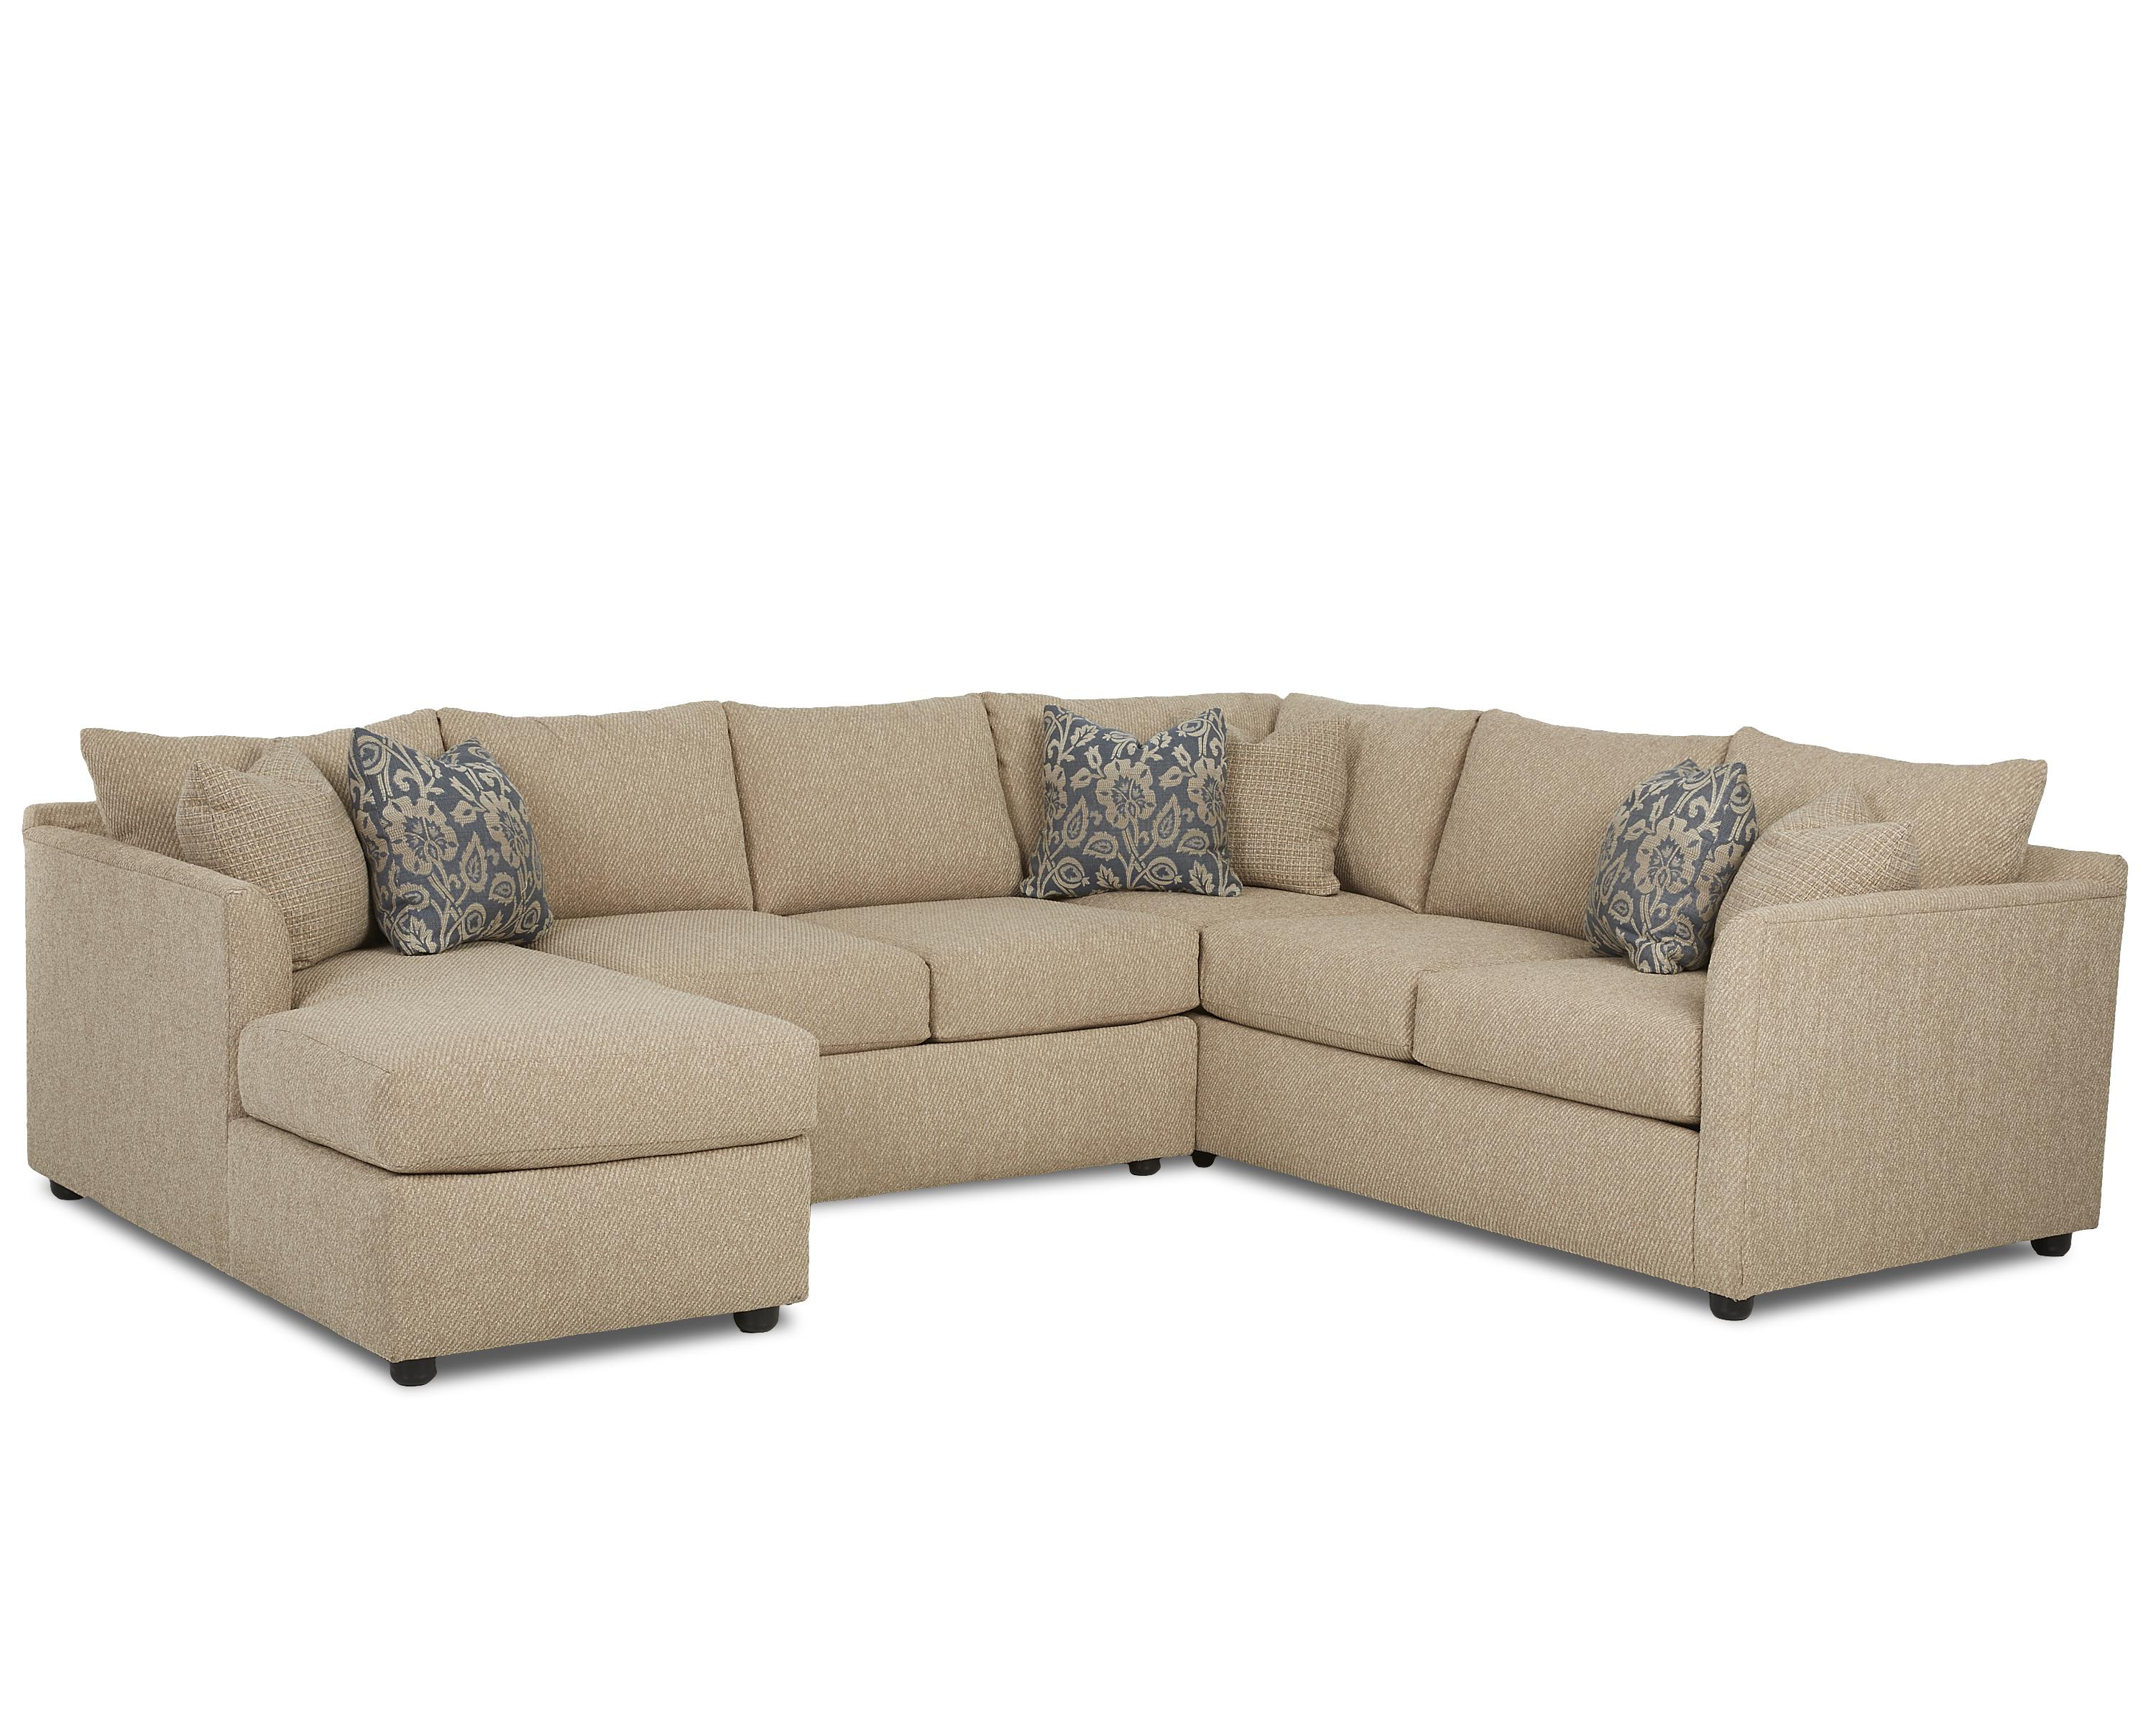 Trisha yearwood home collection by klaussner atlanta for Sofa chaise 1 lugar